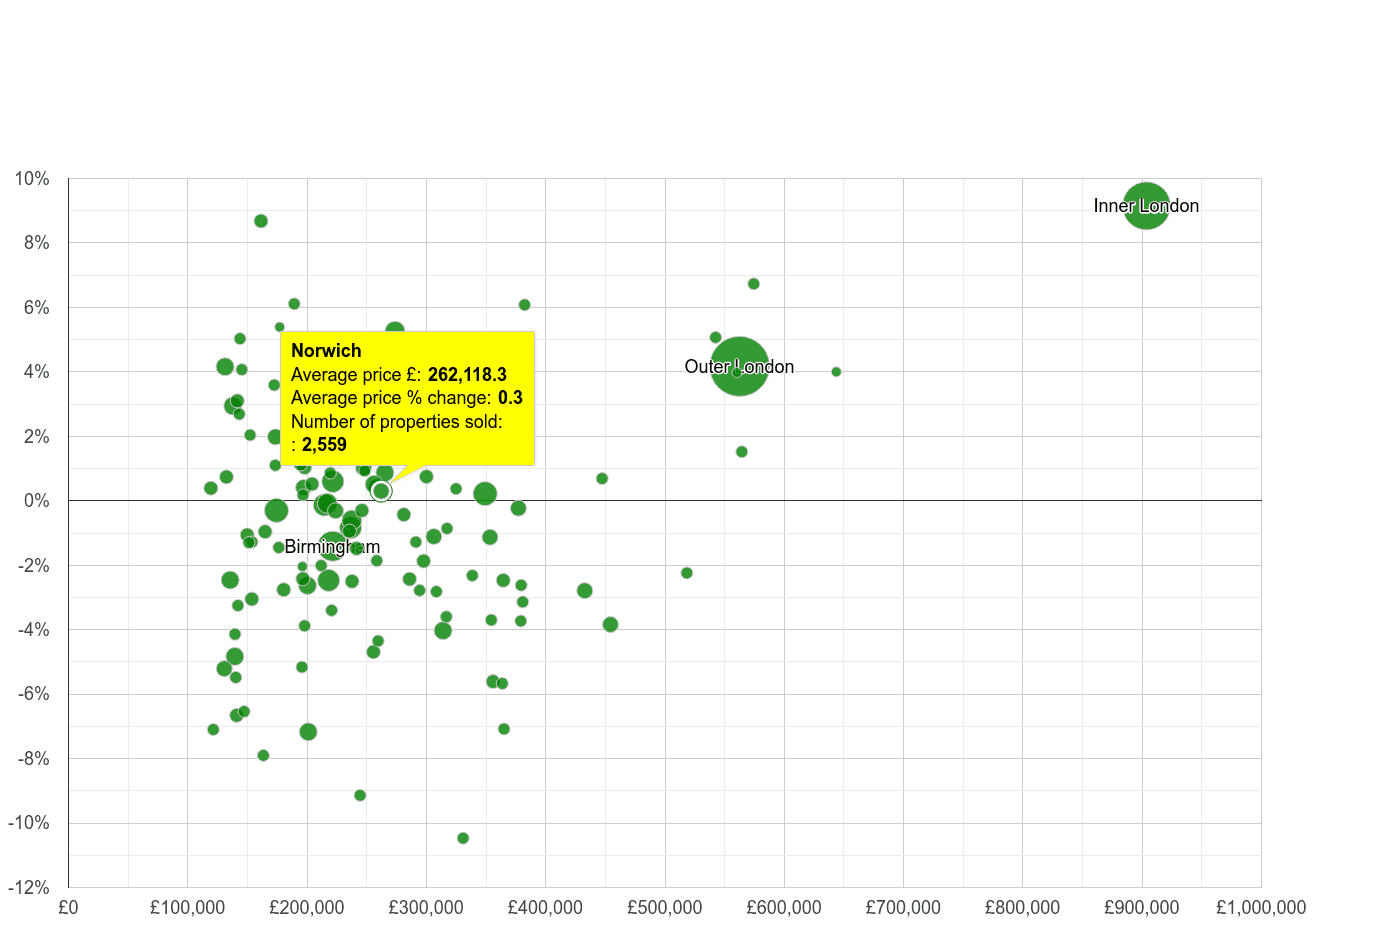 Norwich house prices compared to other cities